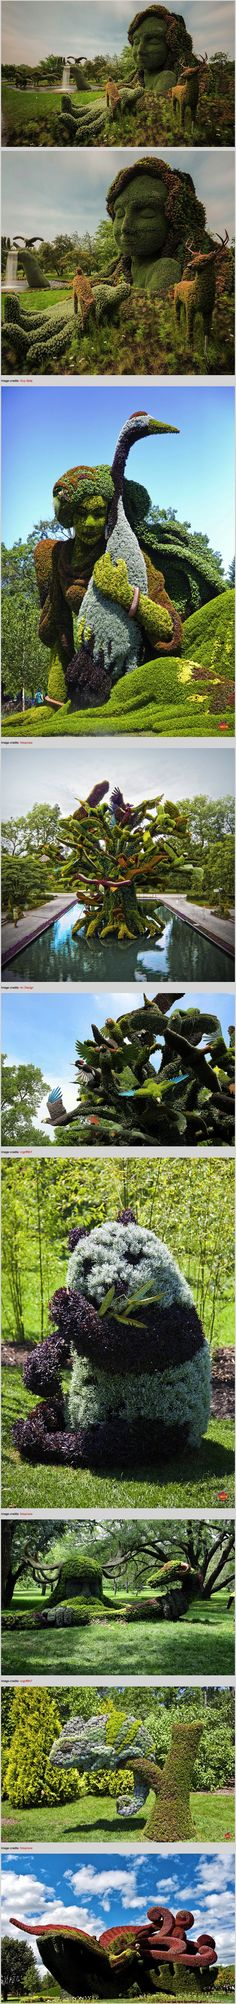 Amazing Plant Sculptures at the Montreal Mosaiculture Exhibition 2013  WOW!!!